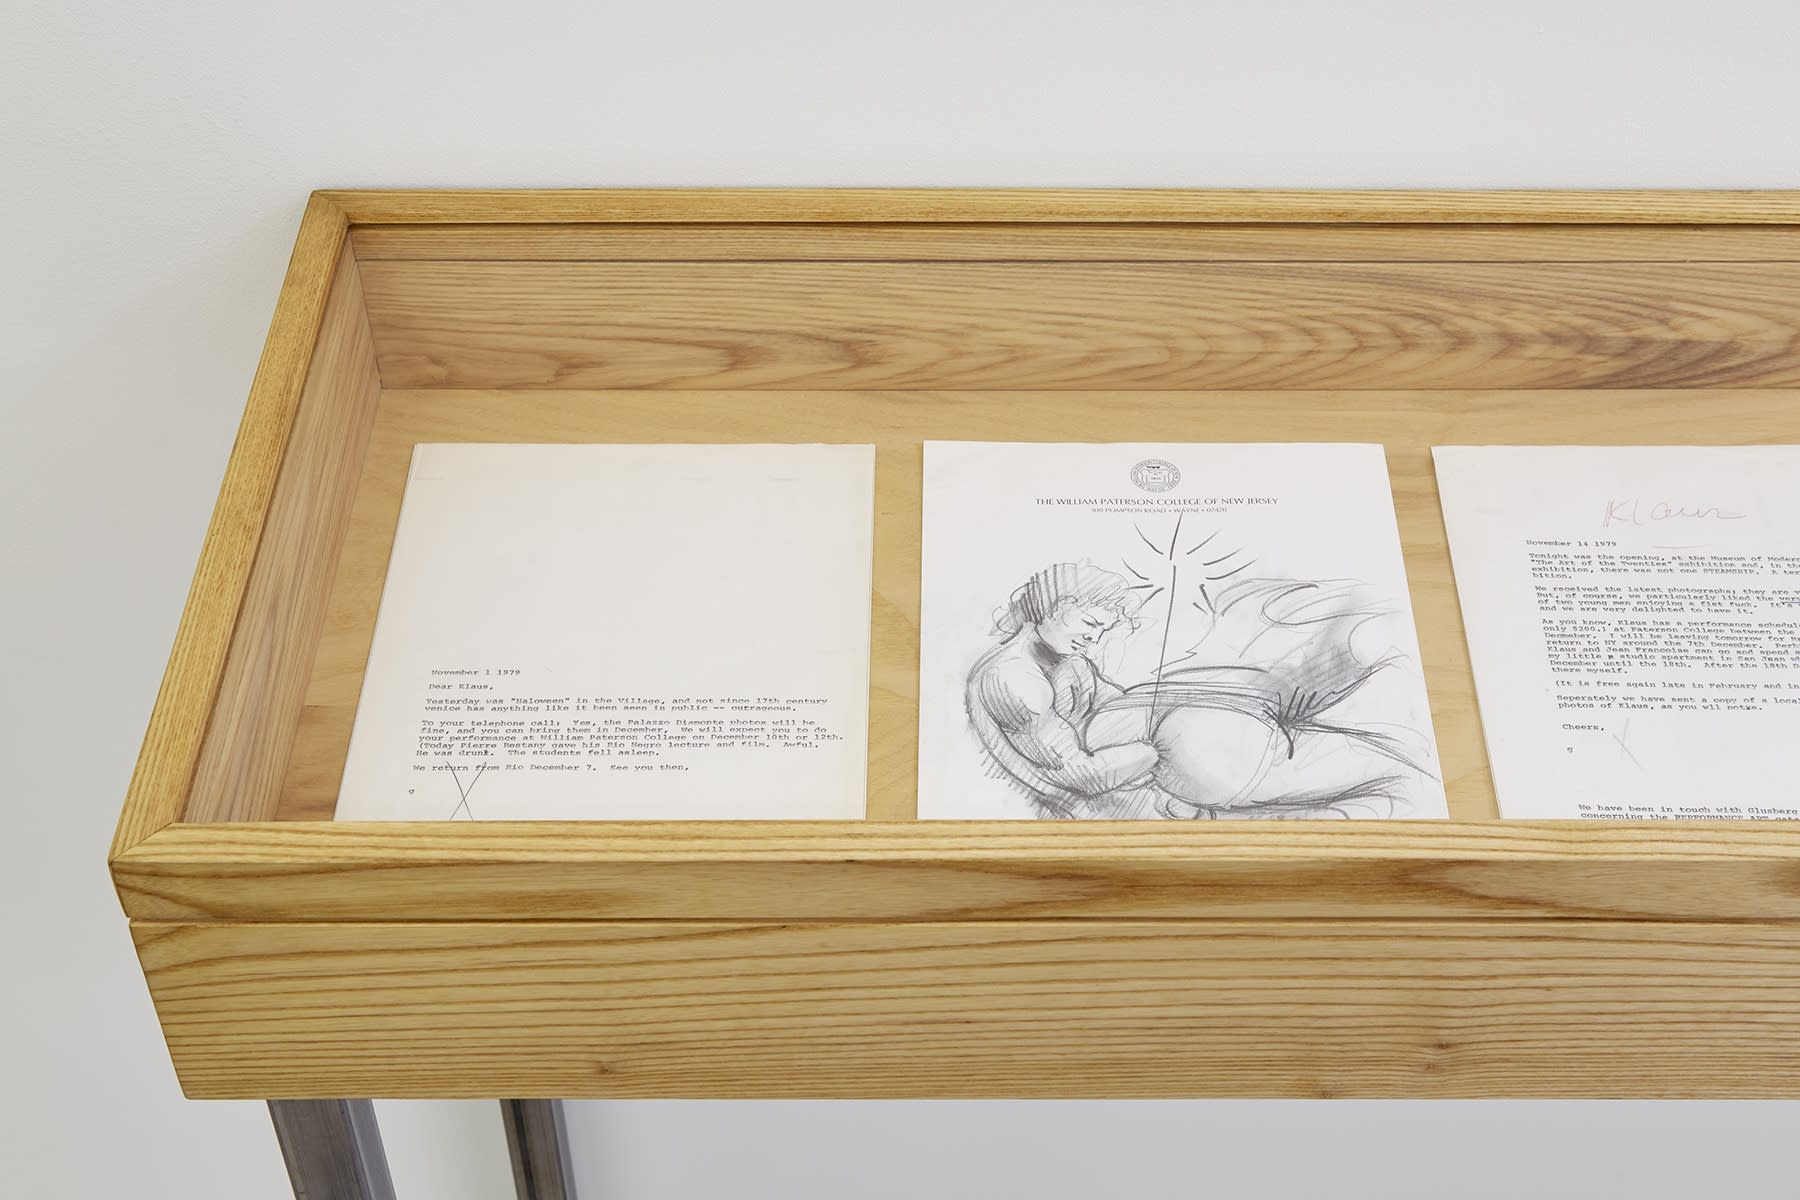 In a wooden display case, a couple of letters from 1979 to a man named Klaus, and a drawing on letterhead reading: THE WILLIAM PATTERSON COLLEGE OF NEW JERSEY.